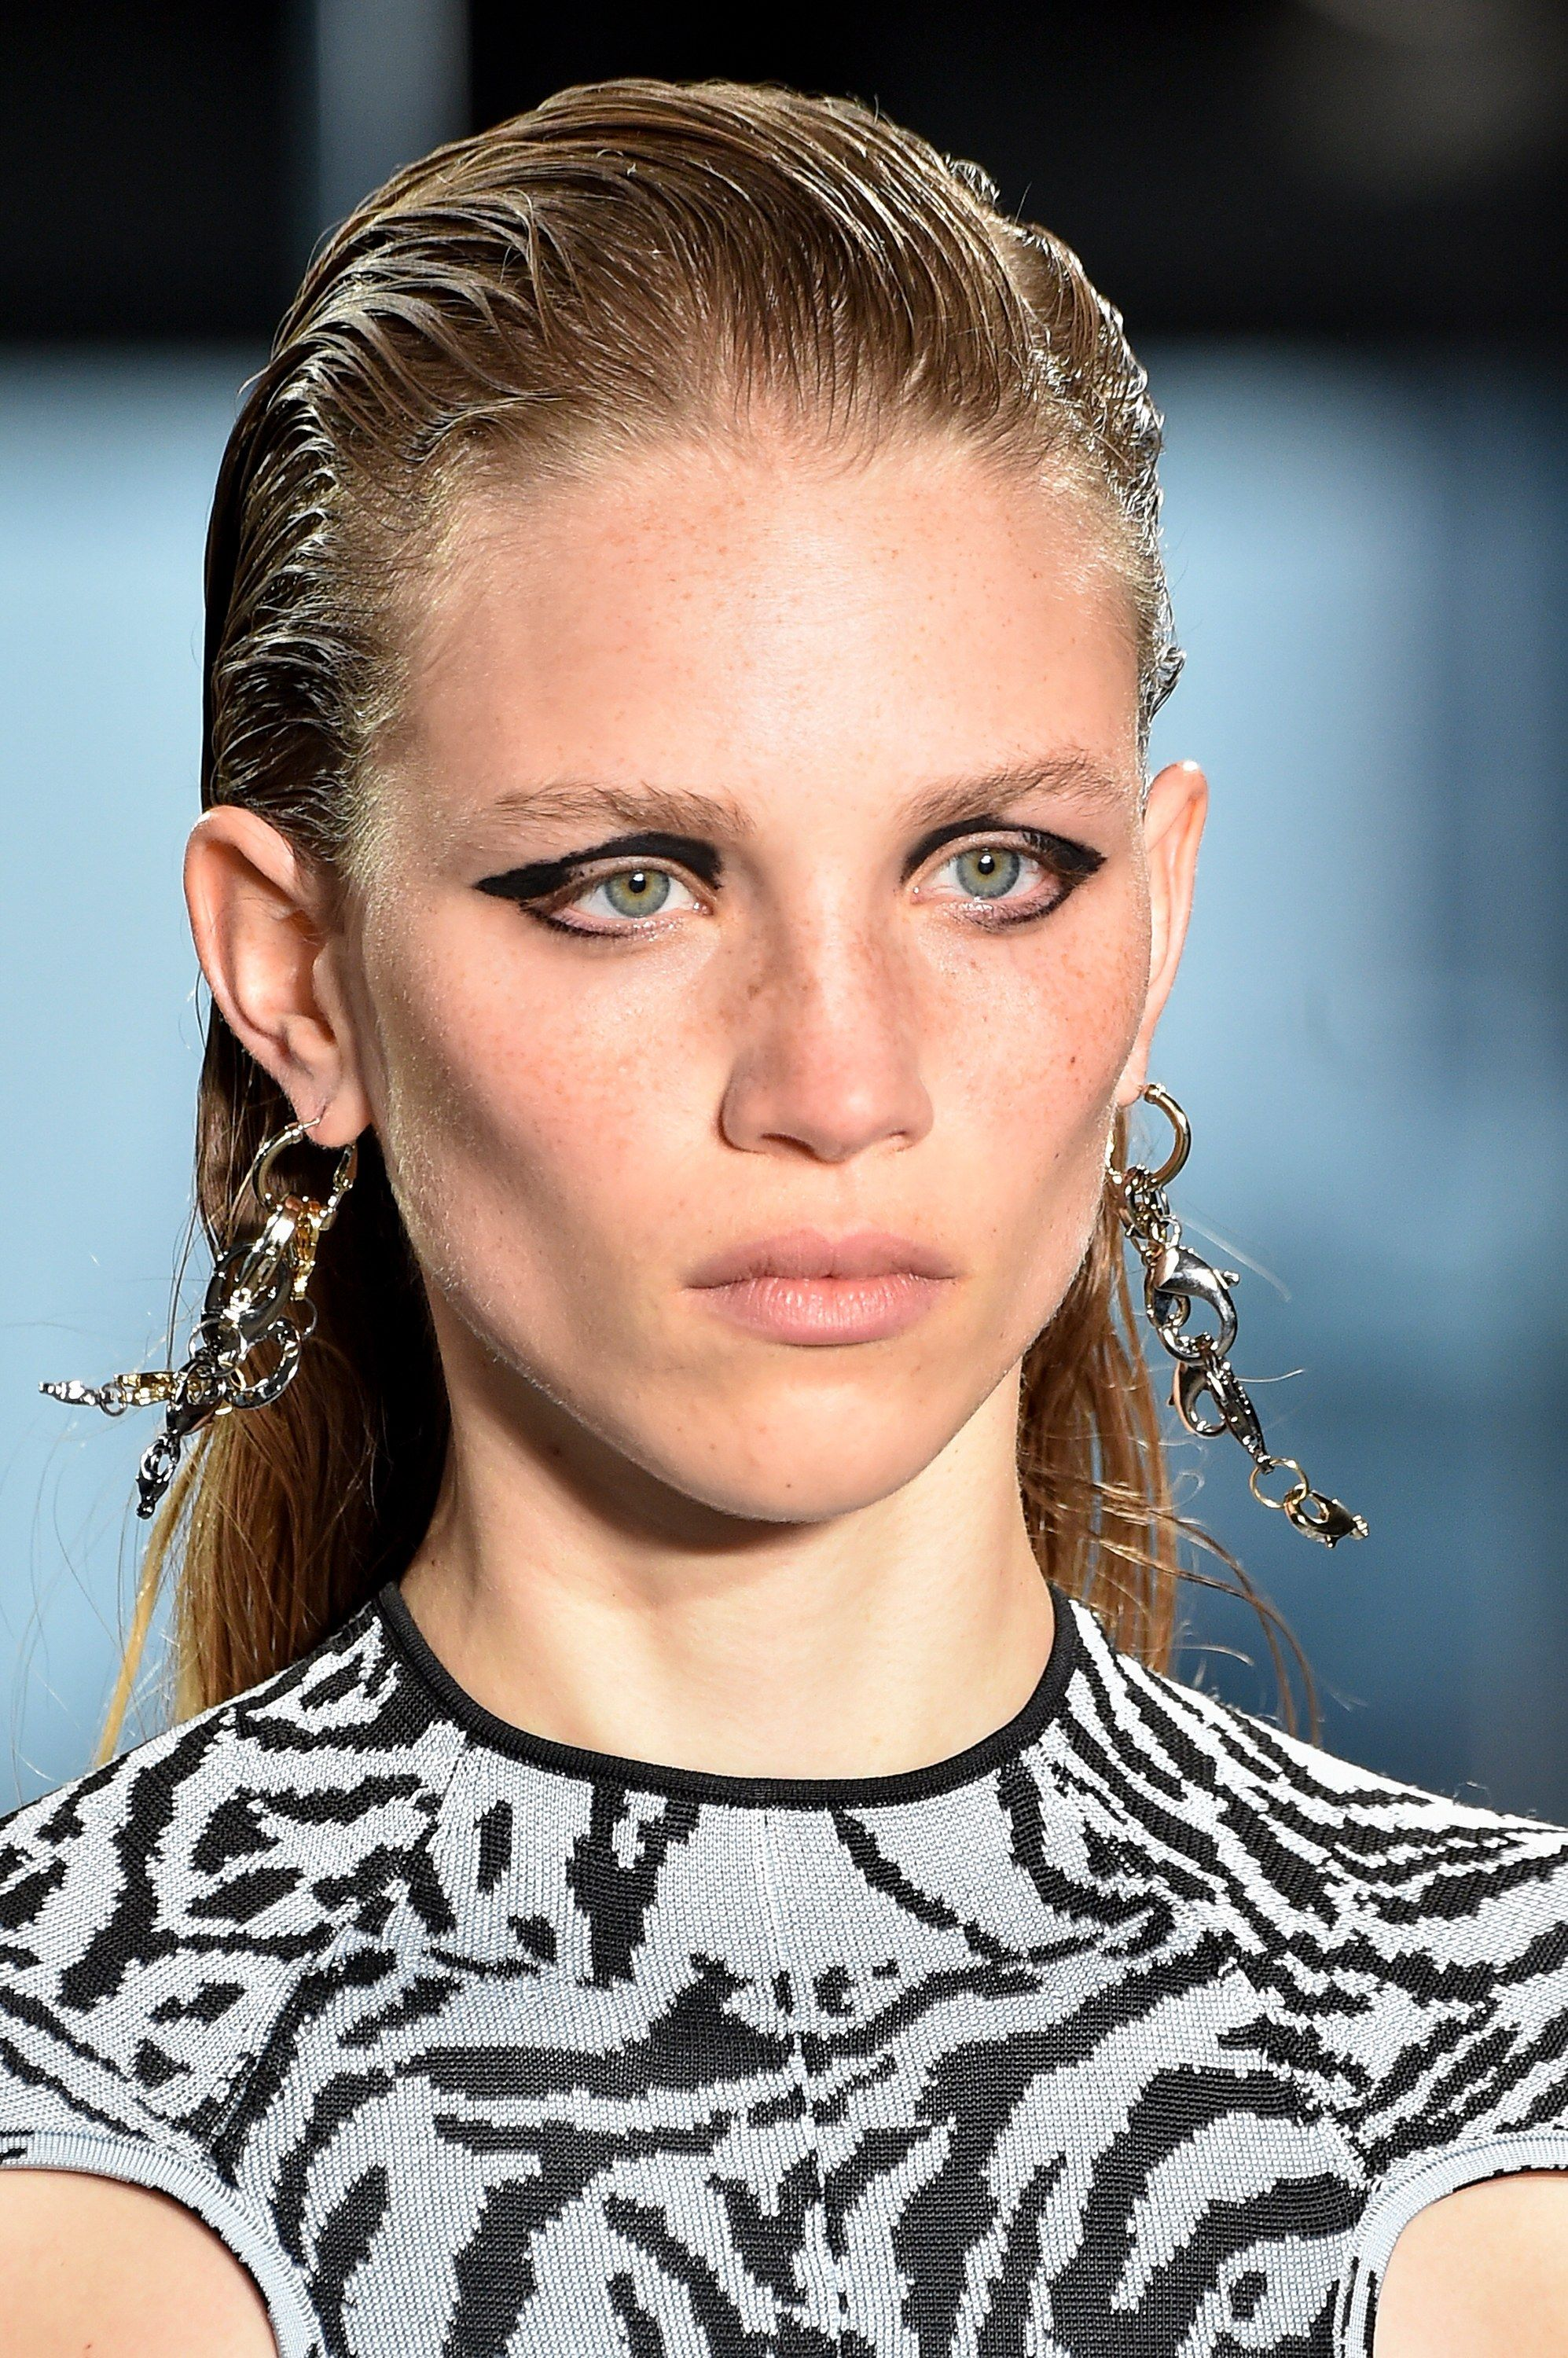 The 5 Most ShowStealing Beauty Trends at New York Fashion